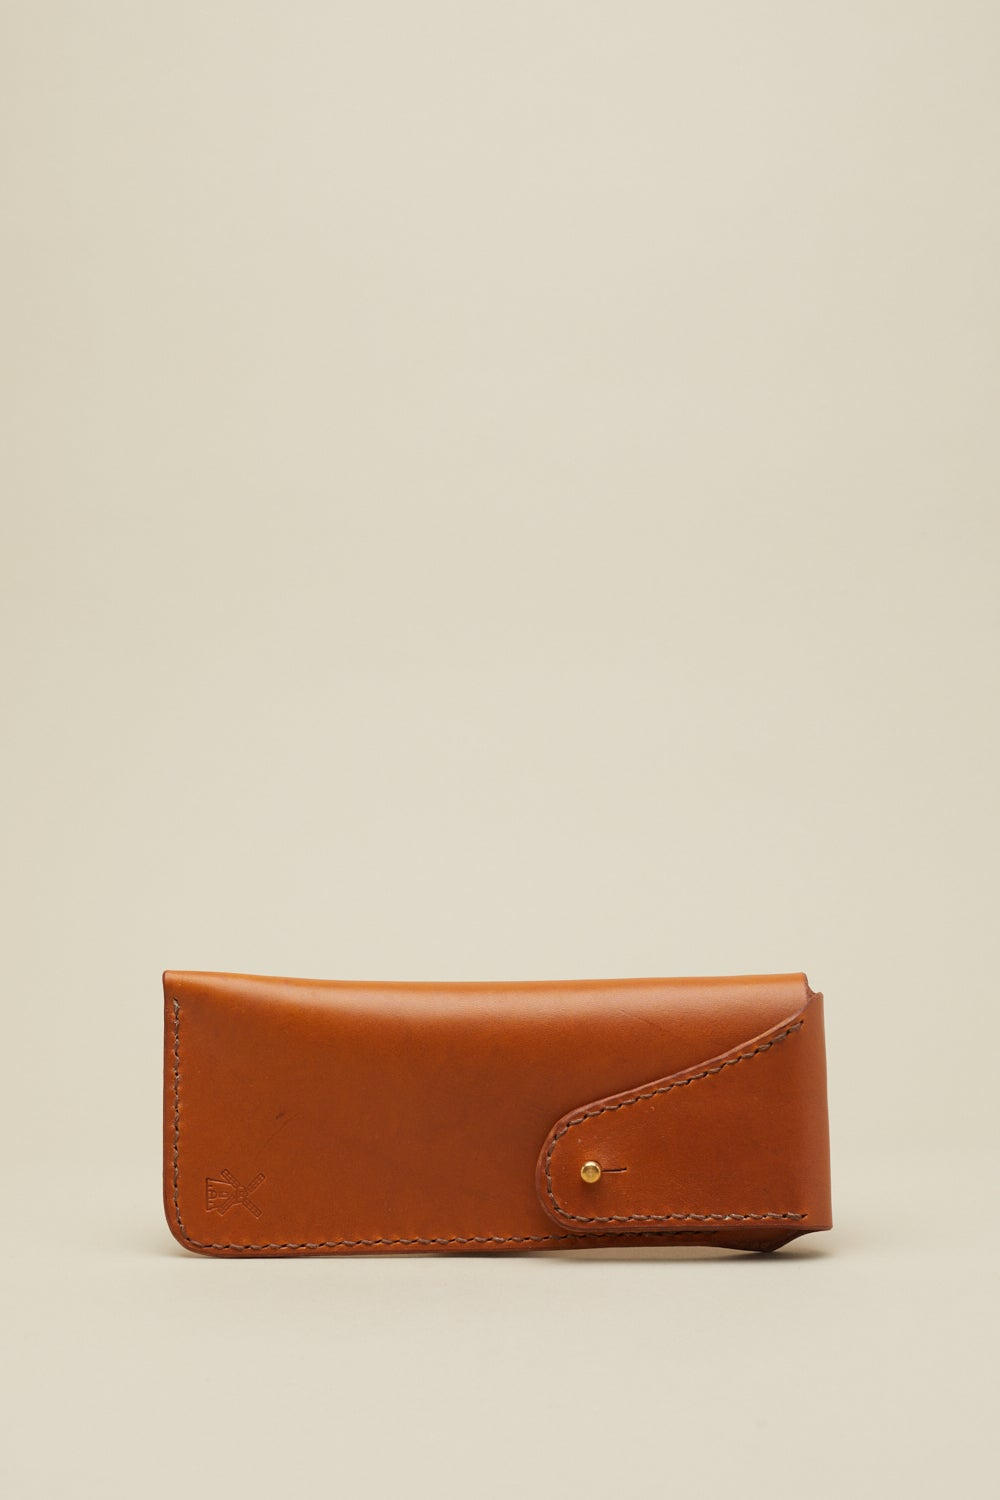 Image of Glasses Case in Tan